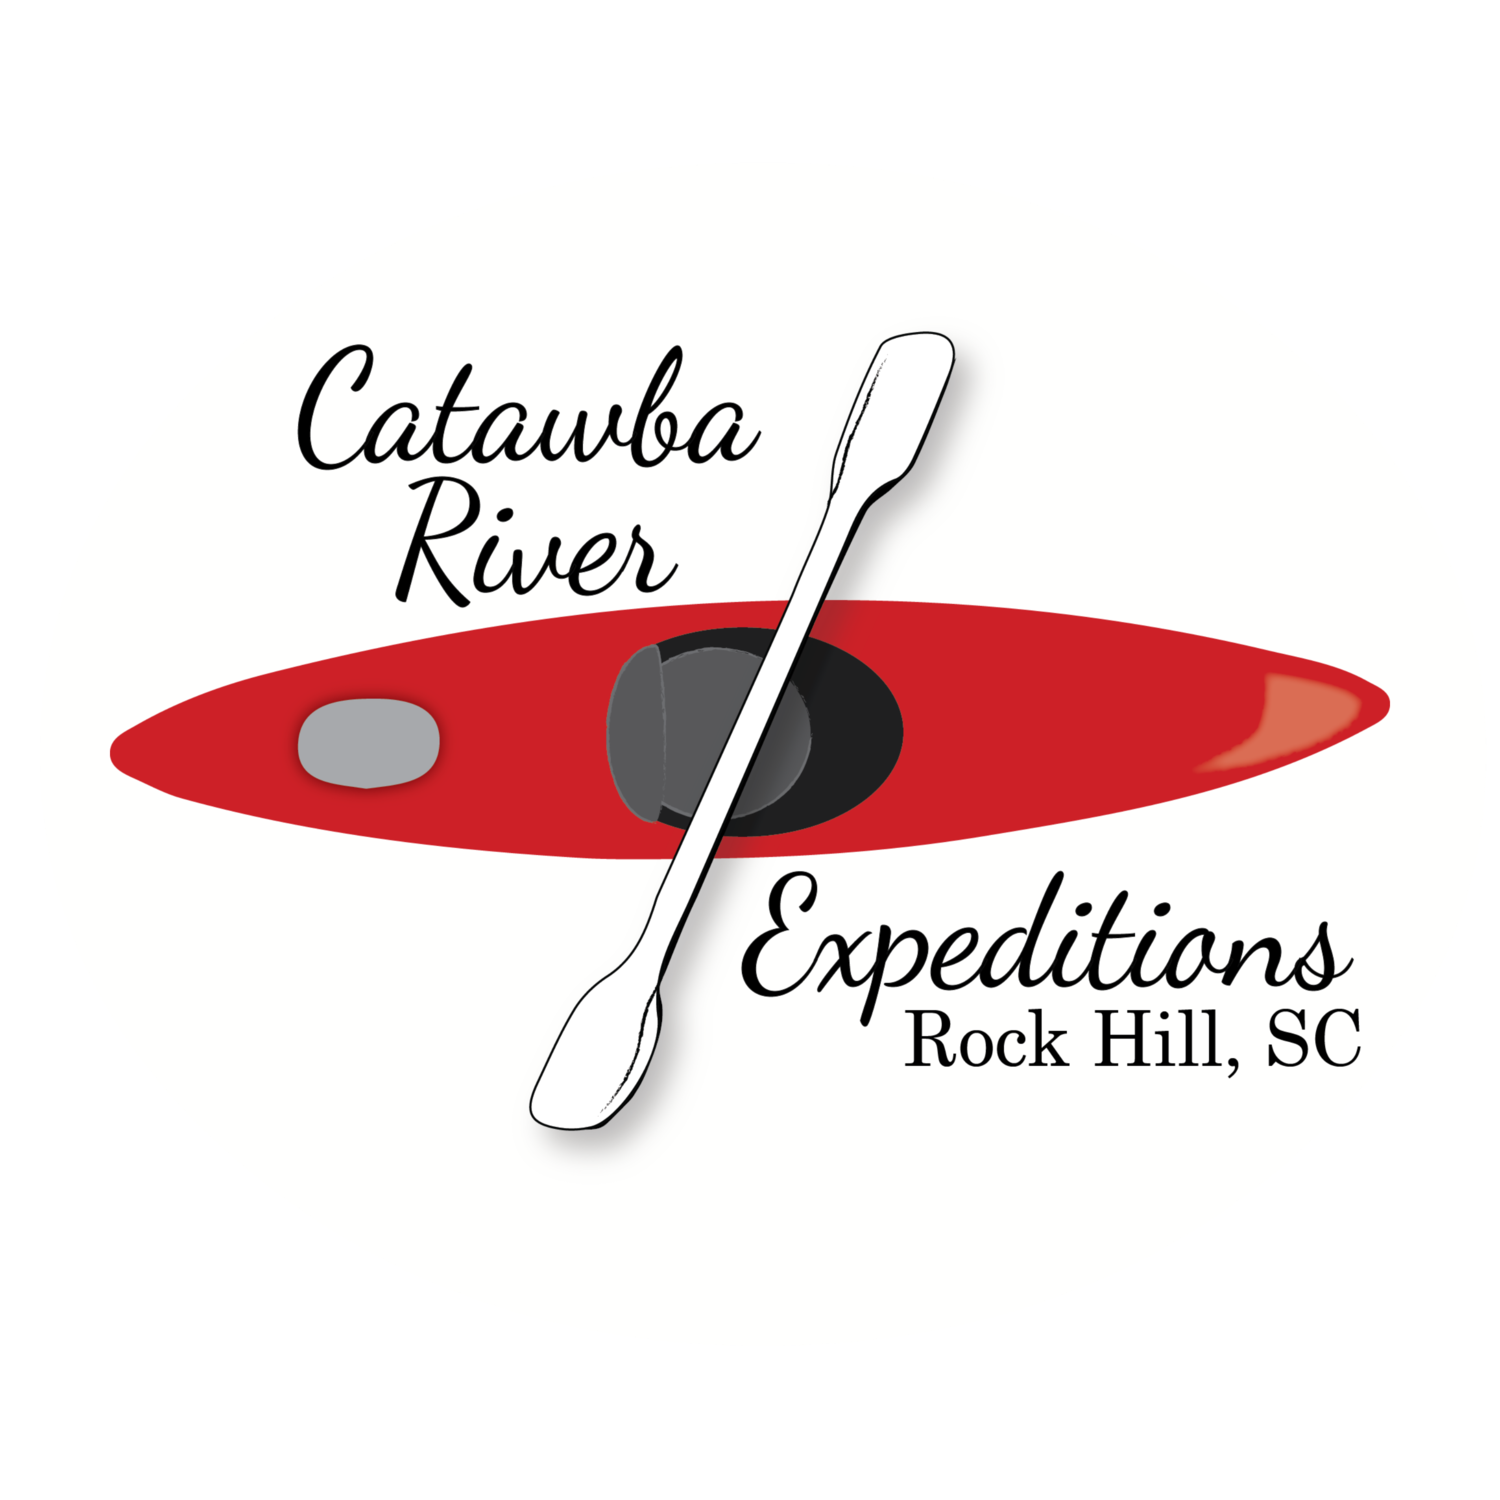 Catawba River Expeditions